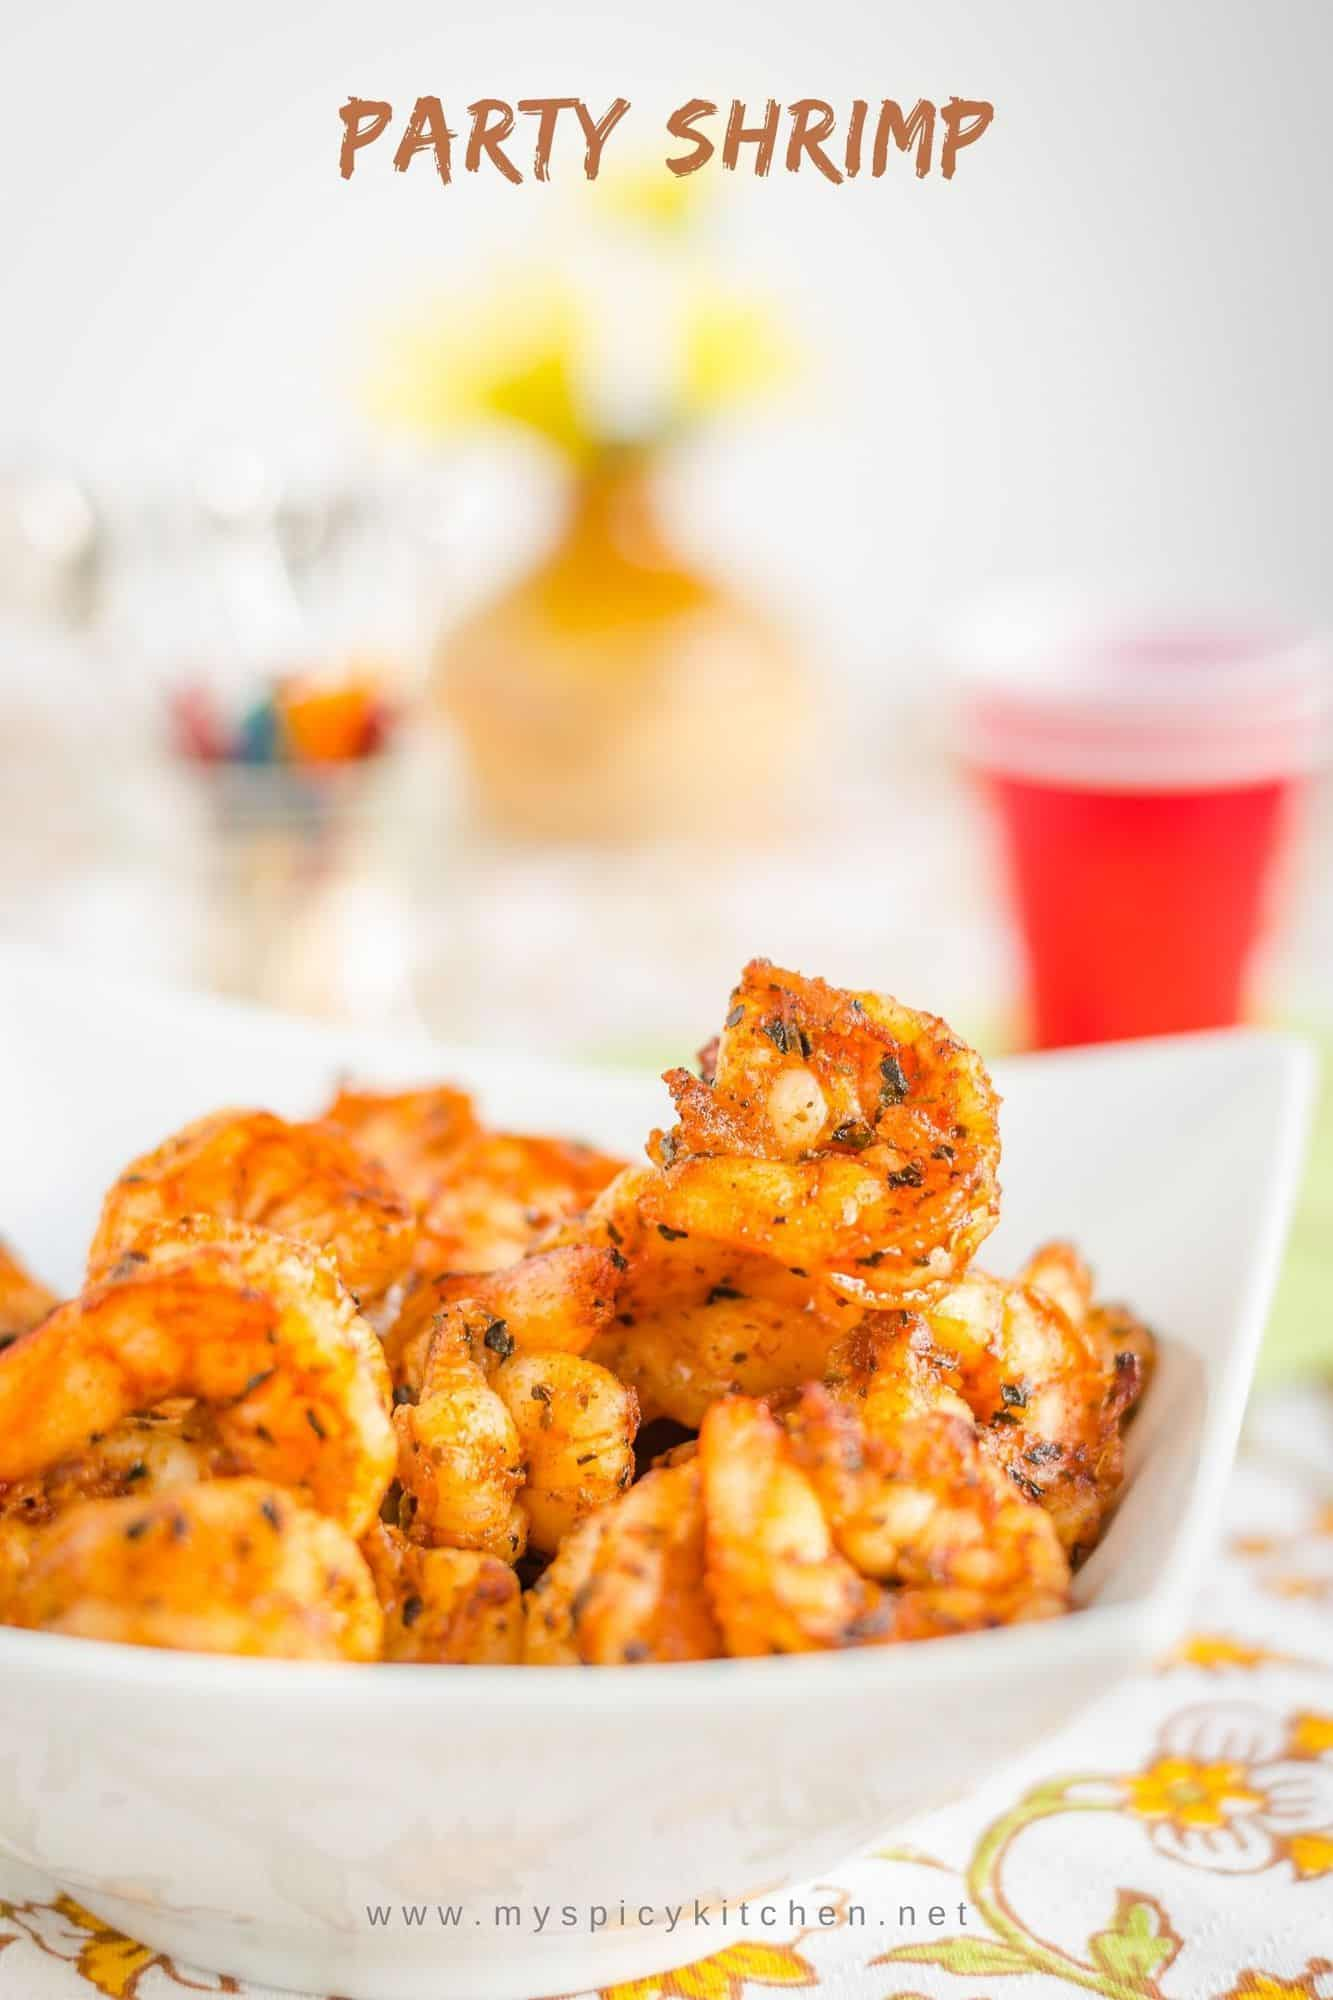 A bowl of party shrimp, marinated in Italian seasoning and broiled